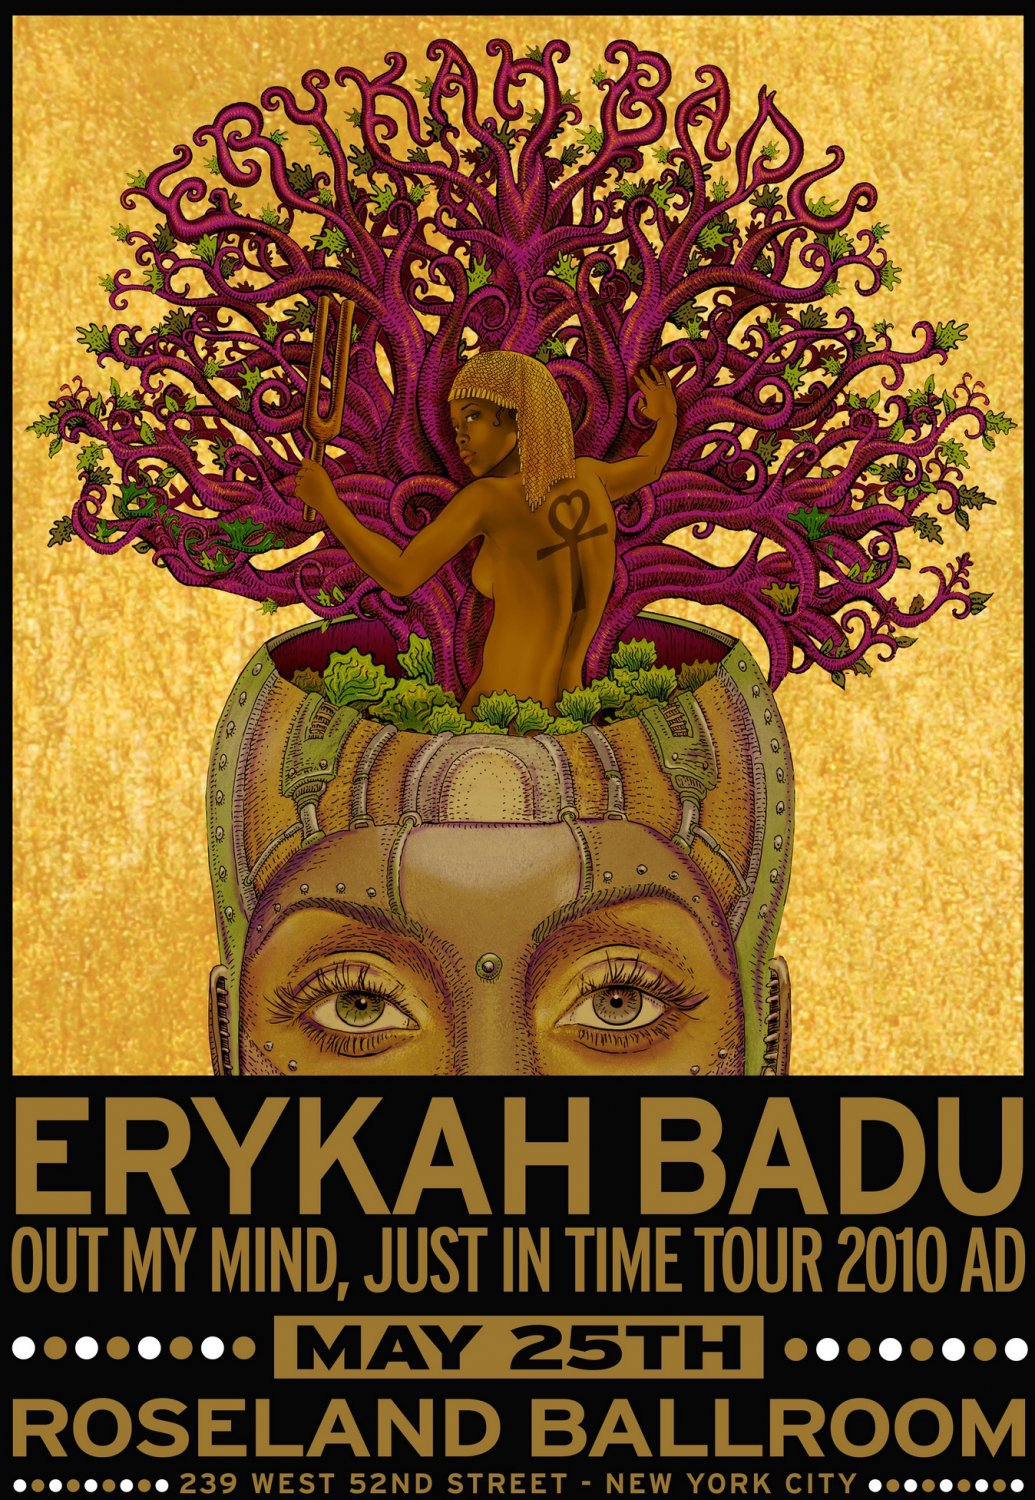 Erykah Badu Out my mind Just in time World Tour Concert  18x28 inches Poster Print